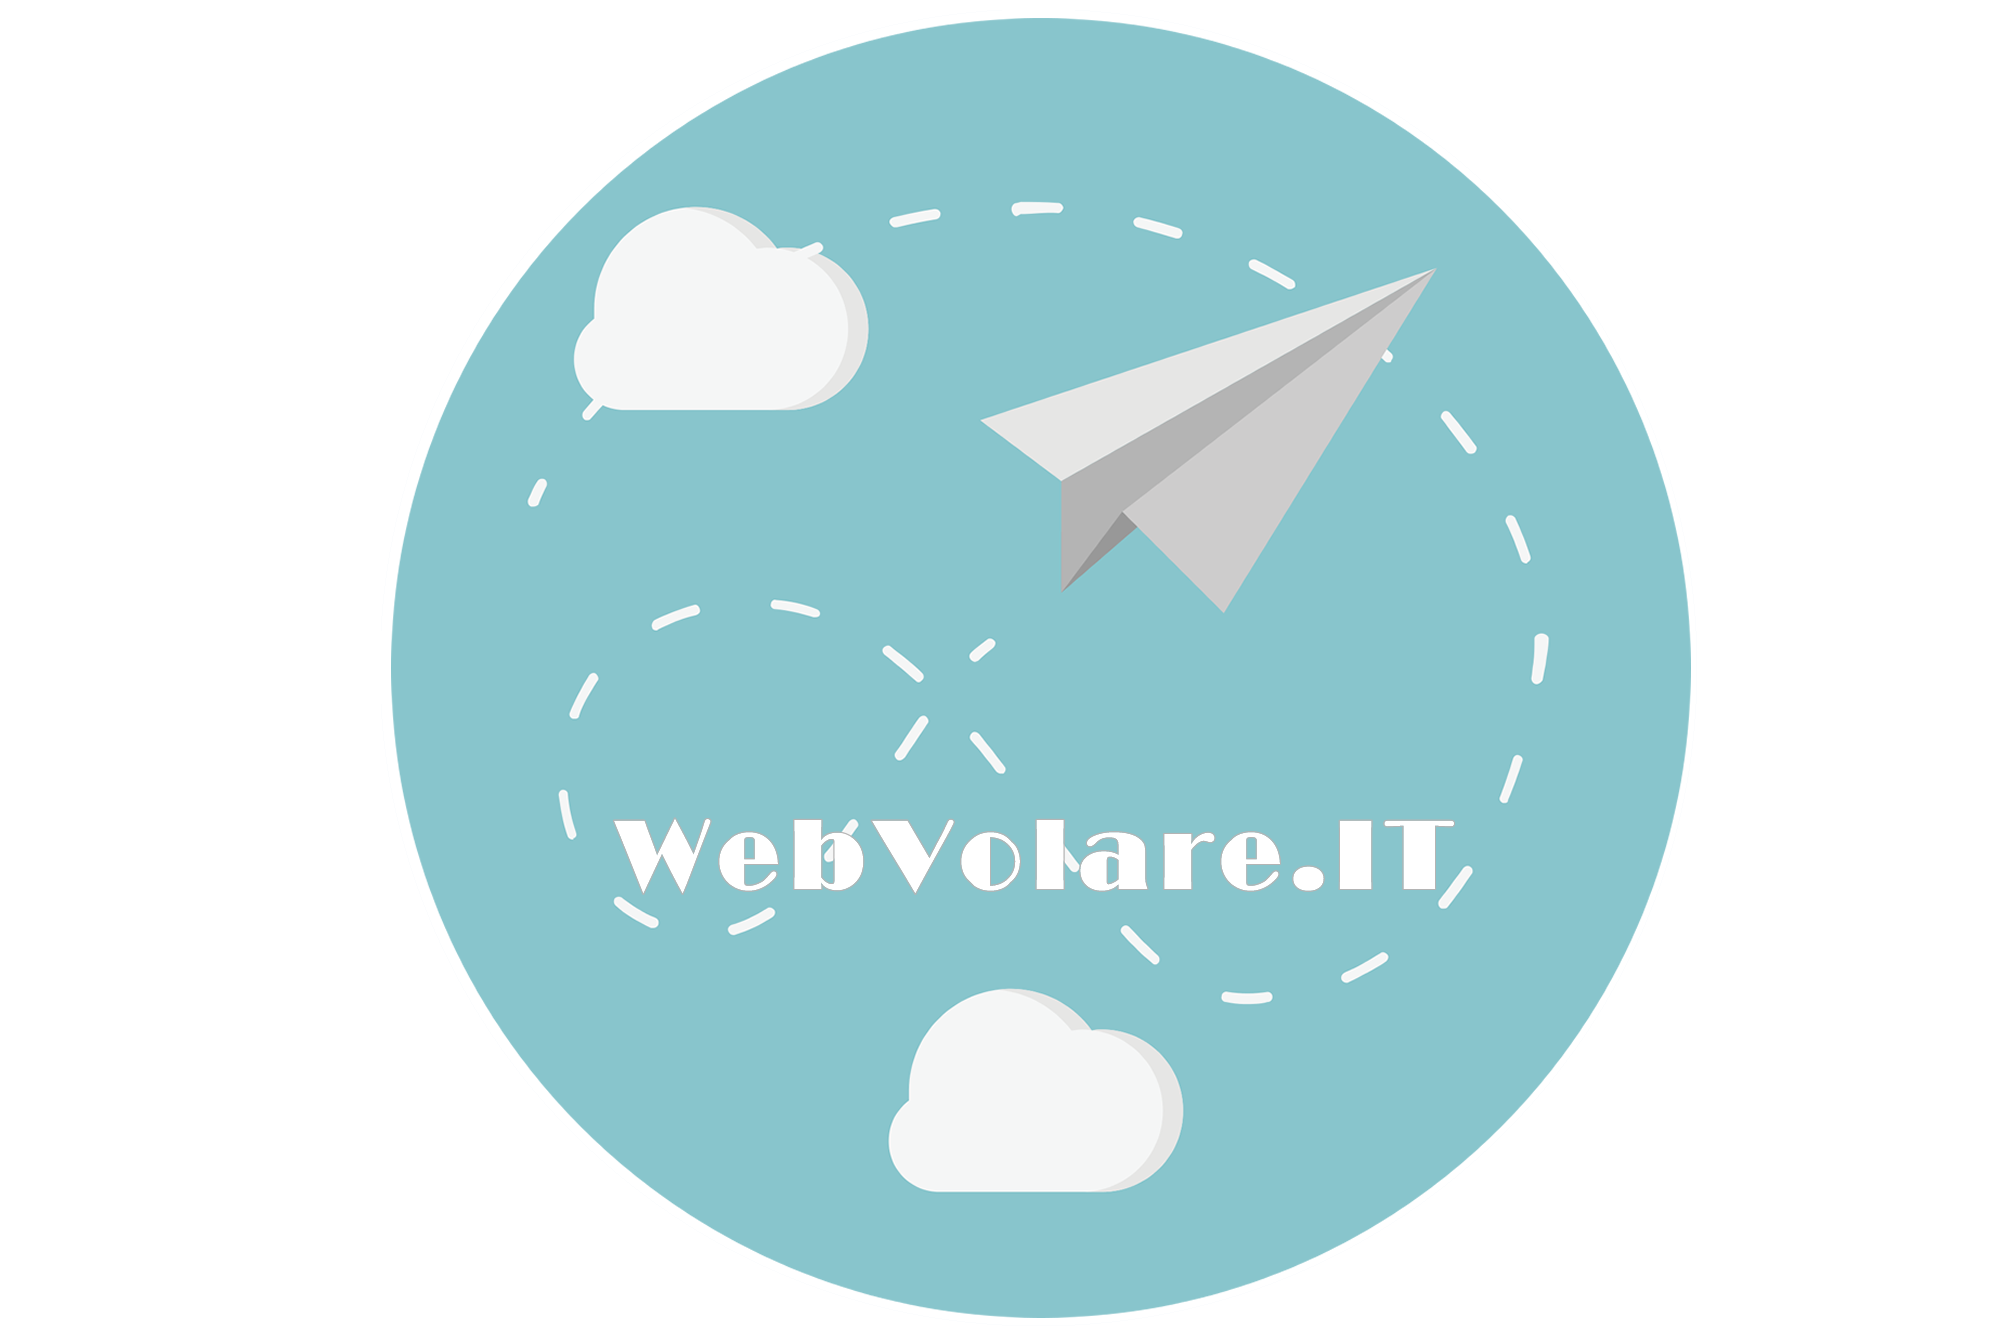 Team WebVolare.it